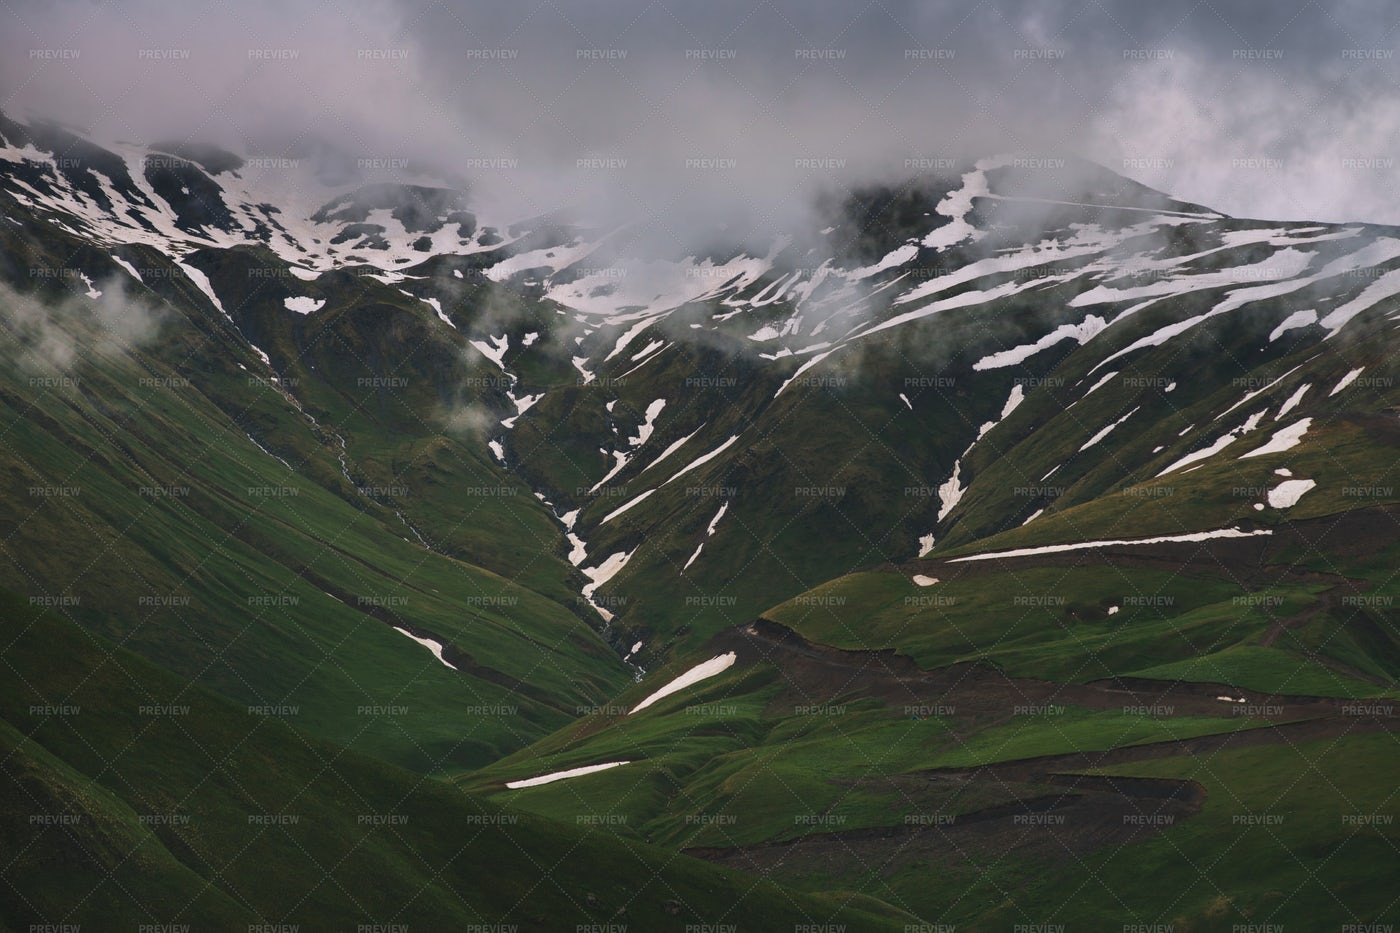 Green Mountains With Snow And Clouds: Stock Photos